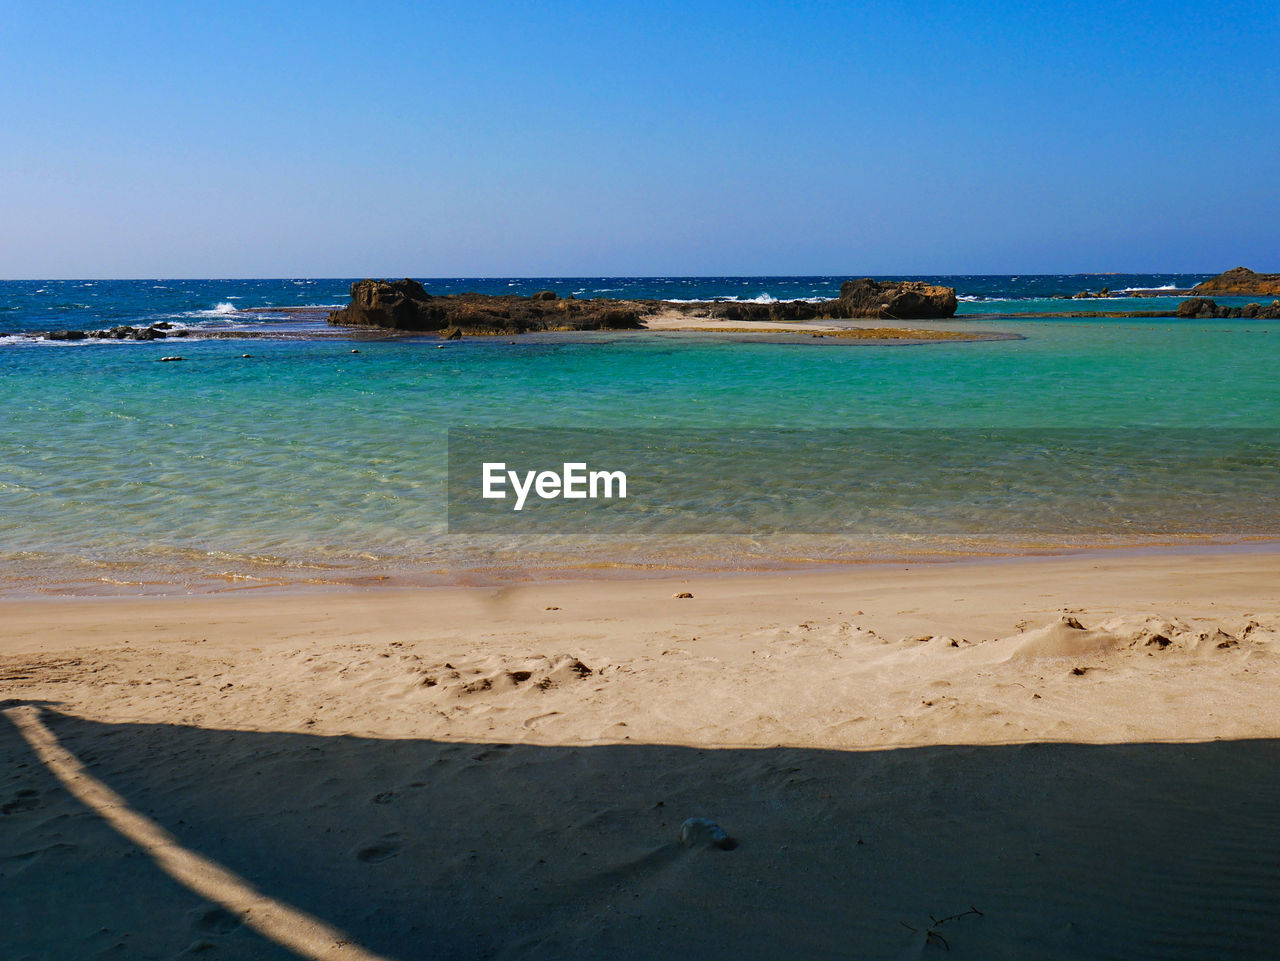 sea, water, land, beach, sky, horizon, sand, beauty in nature, horizon over water, scenics - nature, clear sky, nature, tranquility, blue, tranquil scene, copy space, no people, idyllic, day, outdoors, turquoise colored